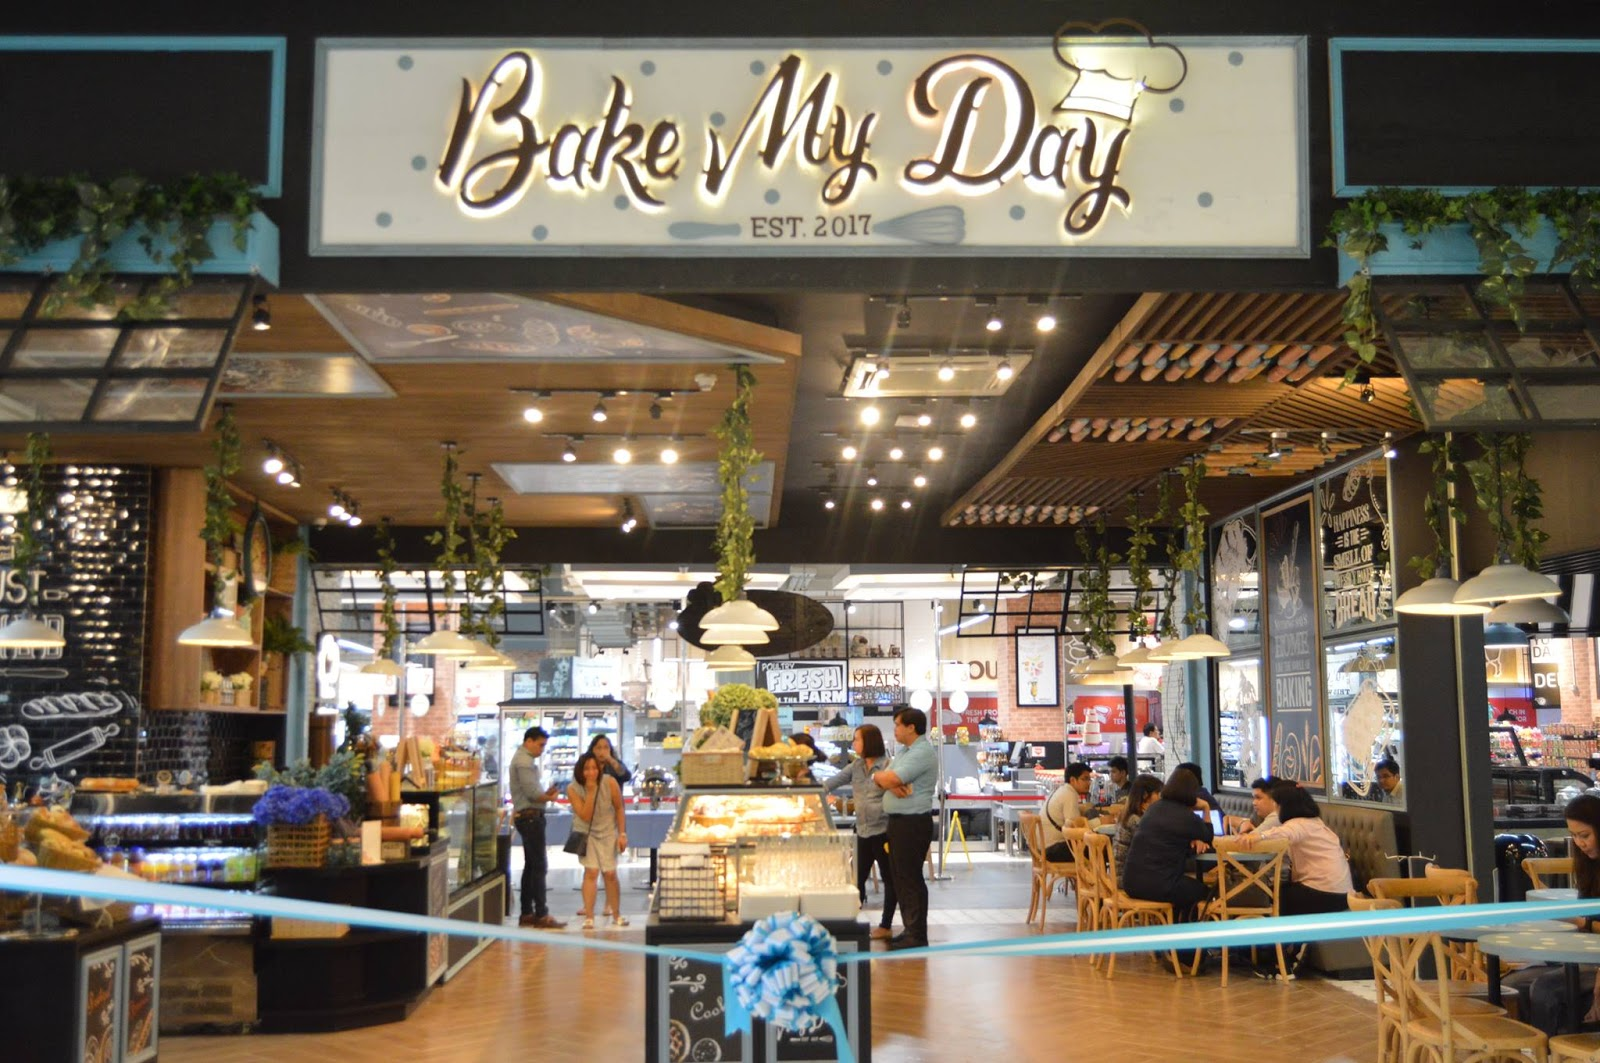 Bake My Day, your breakfast table in Vista Mall Taguig, is located at the Ground floor, near The Courtyard COHO, a preselling condo